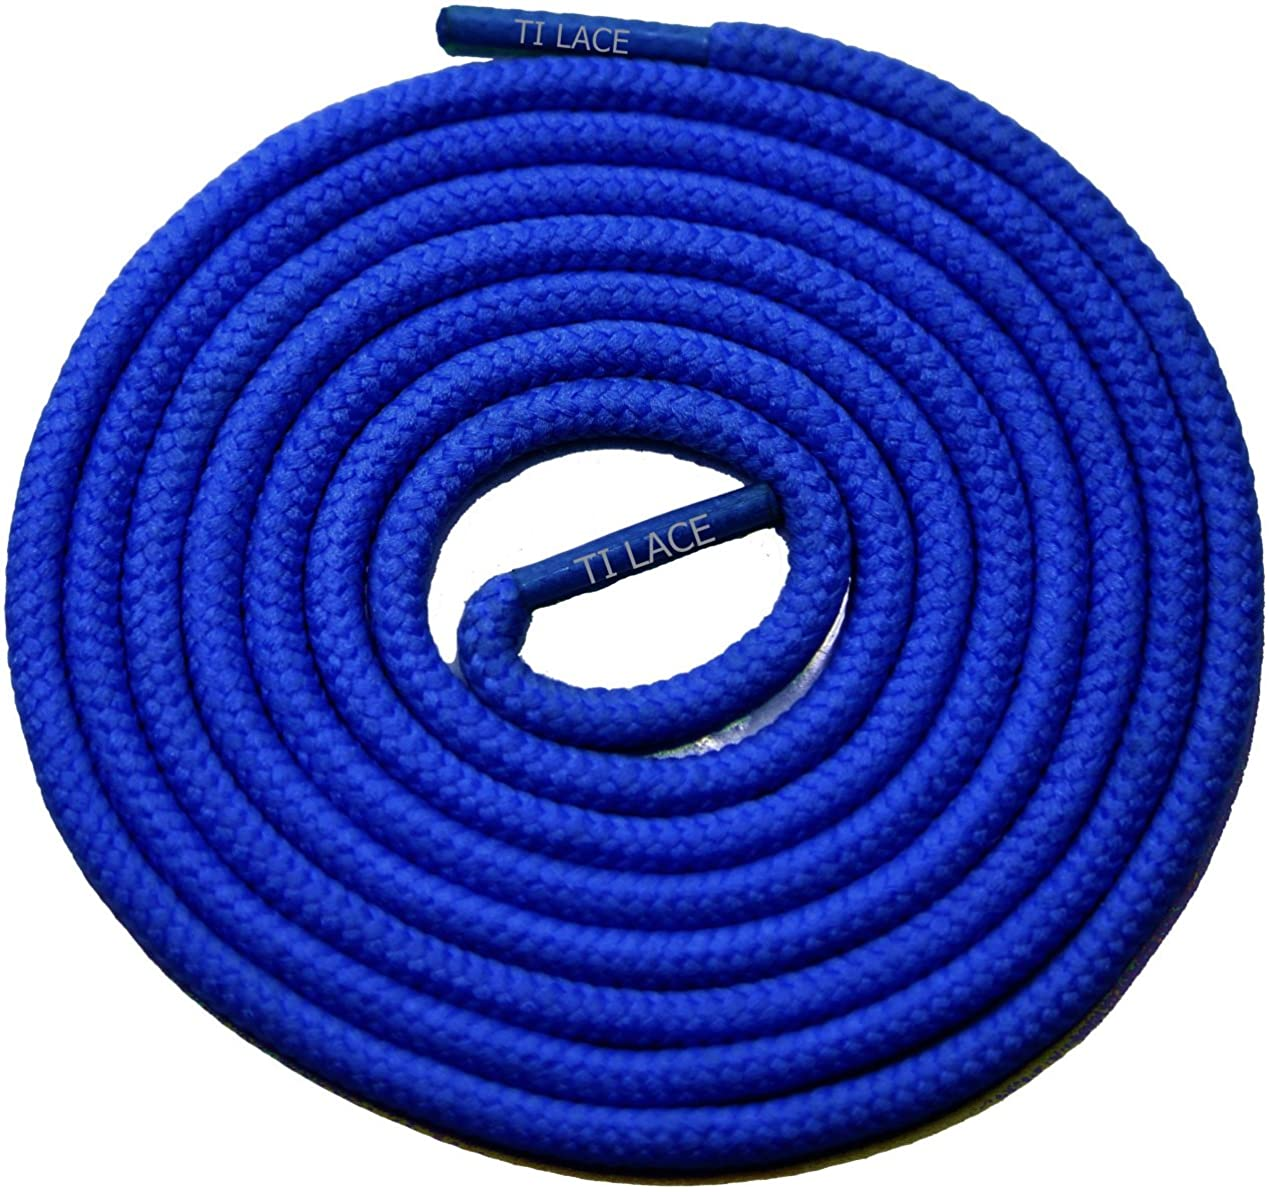 54 Royal Blue 3/16 Round Thick Shoelace For All Womens Dress Shoes